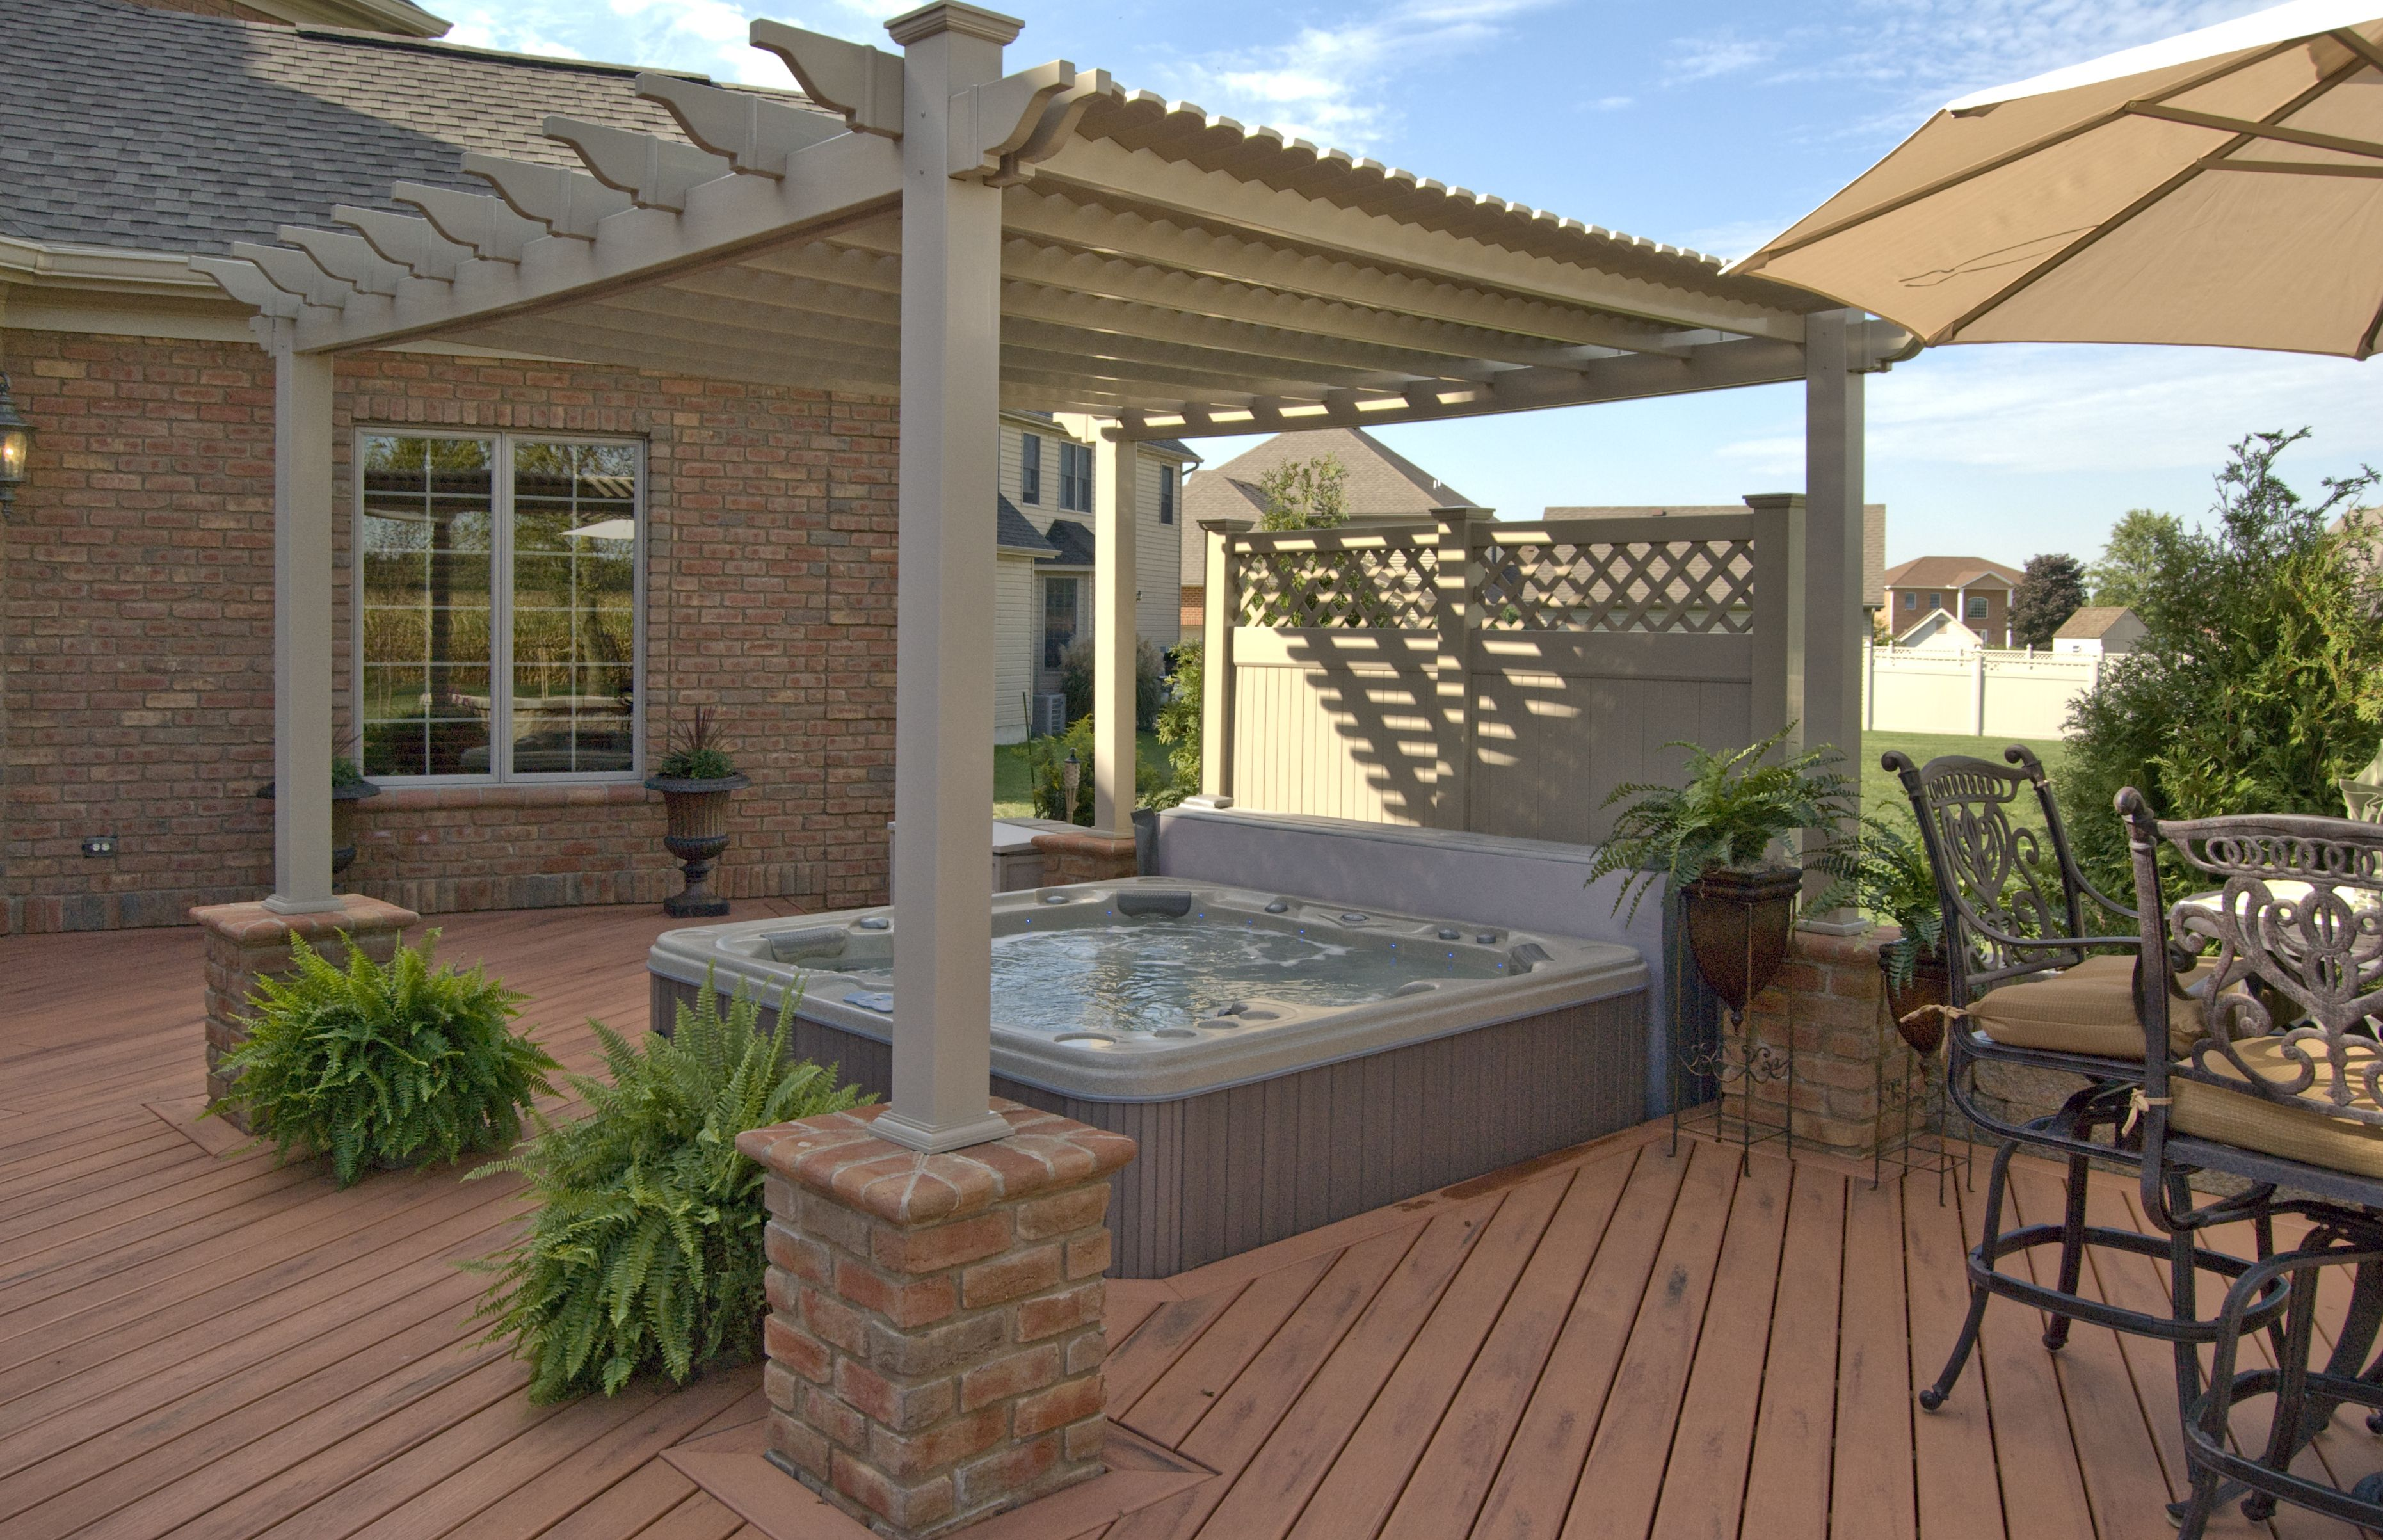 Addign a pergola over your hot tub is a great way to add for Deck gets too hot